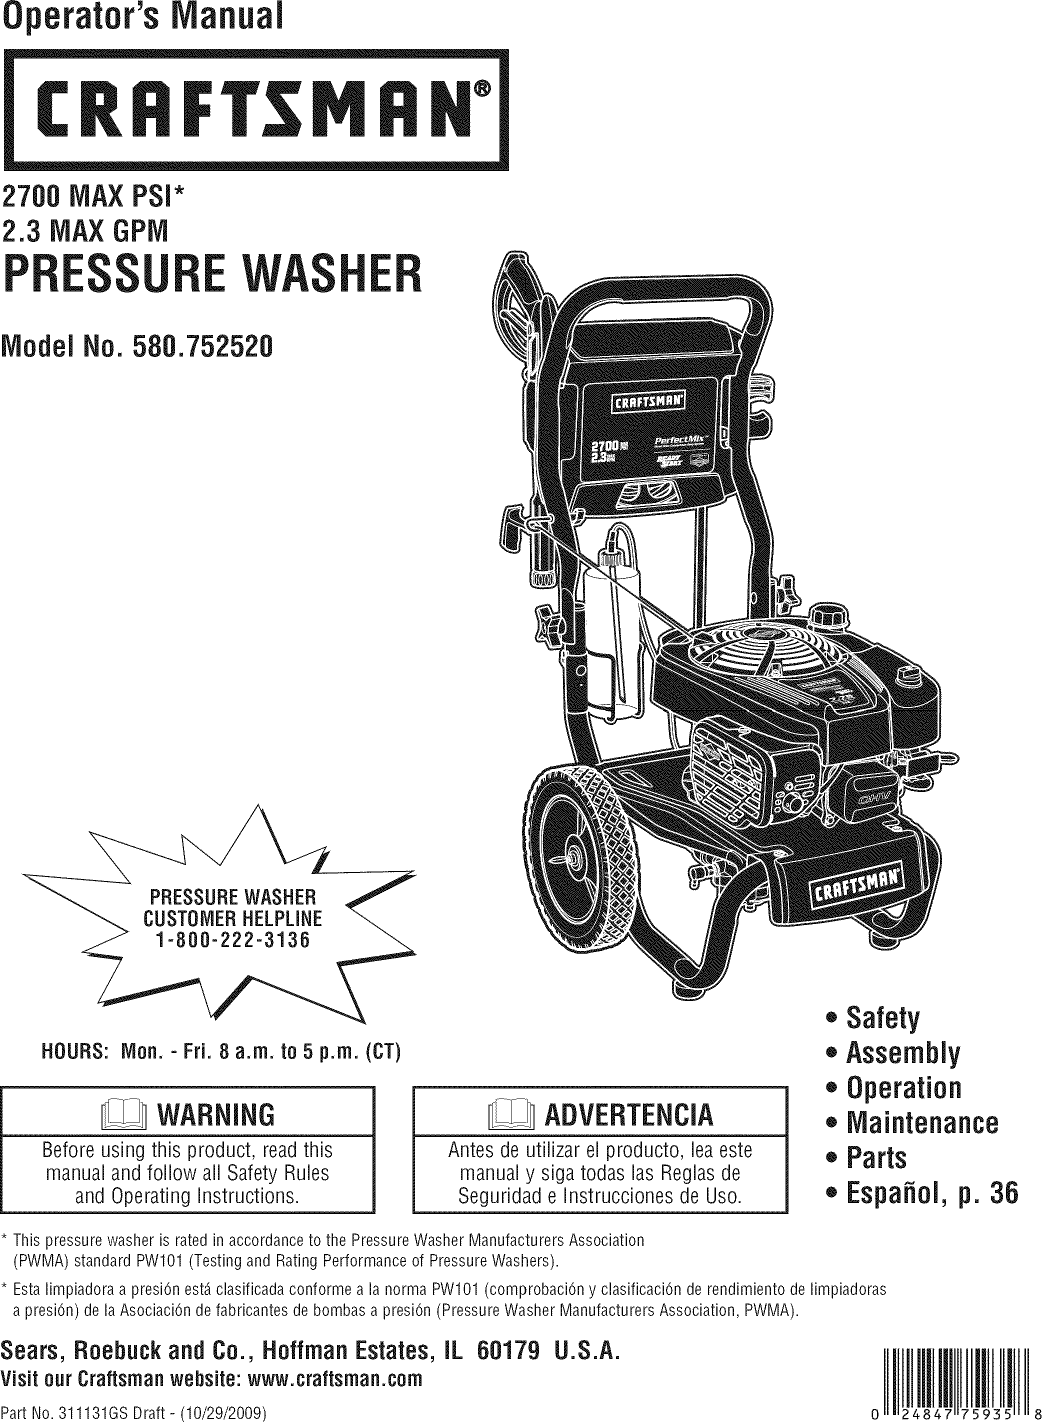 Generac Pressure Washer Archives Manual Guide